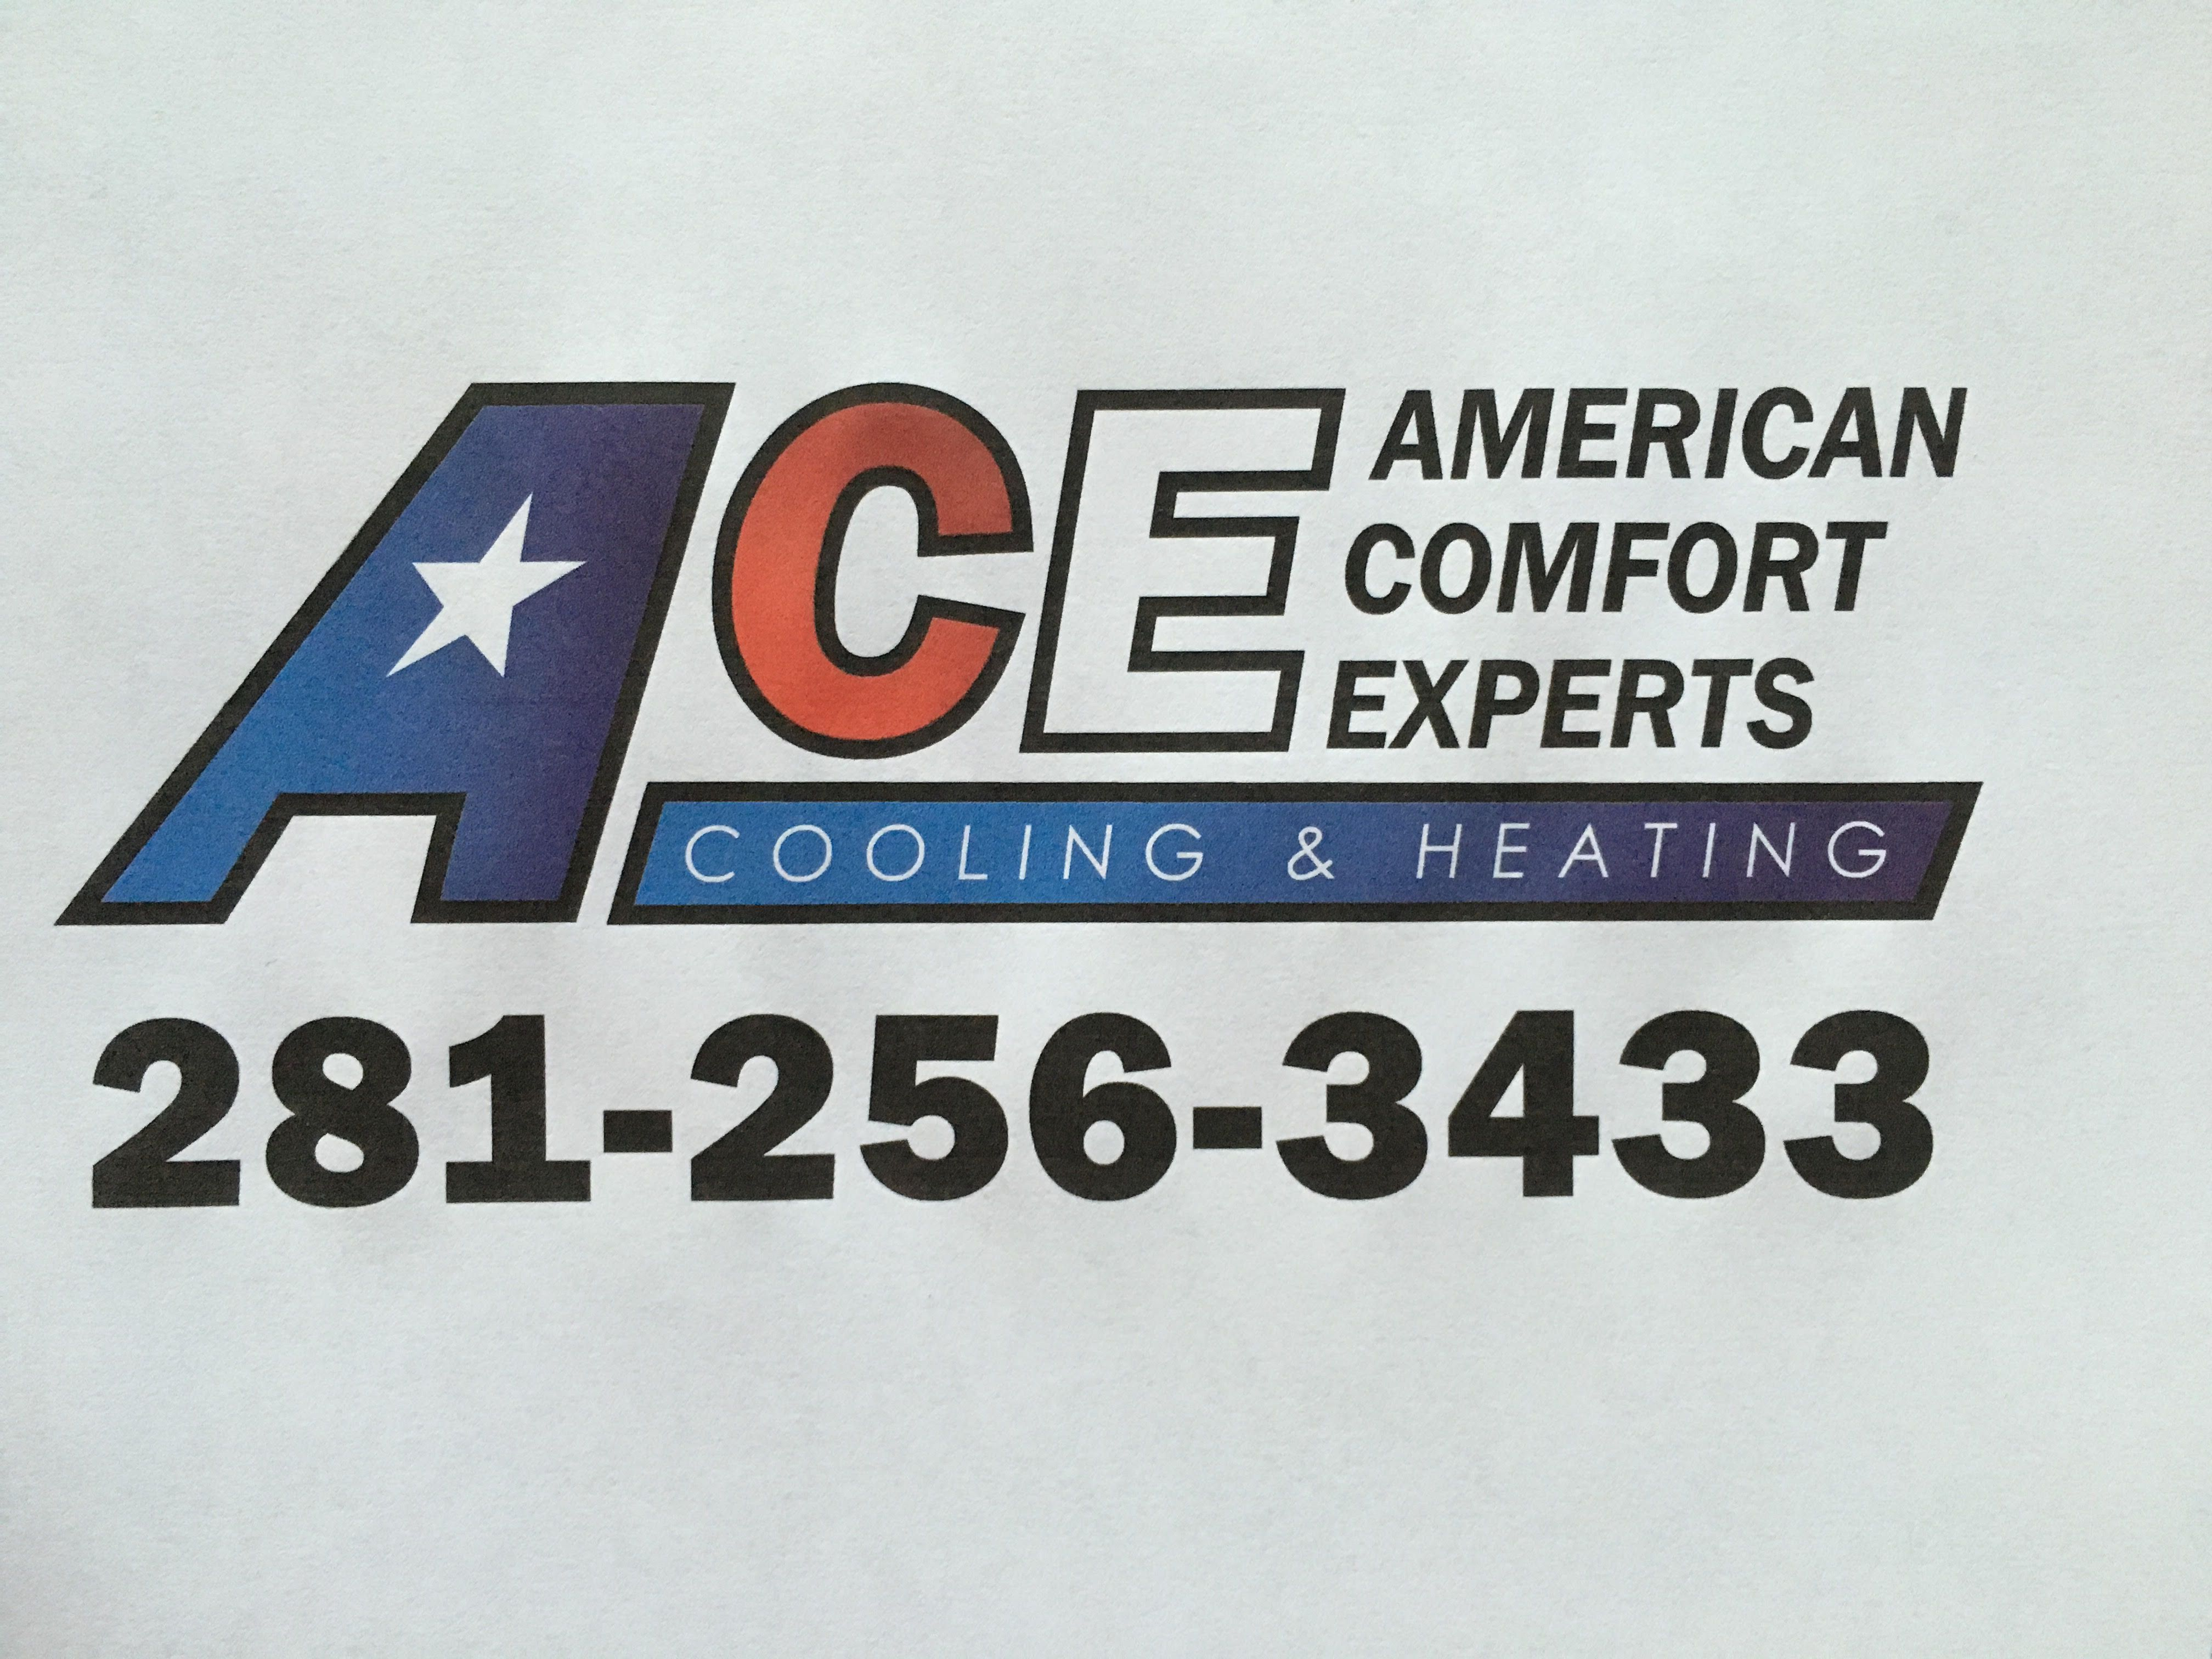 American Comfort Experts Customer Testimonials Prove That